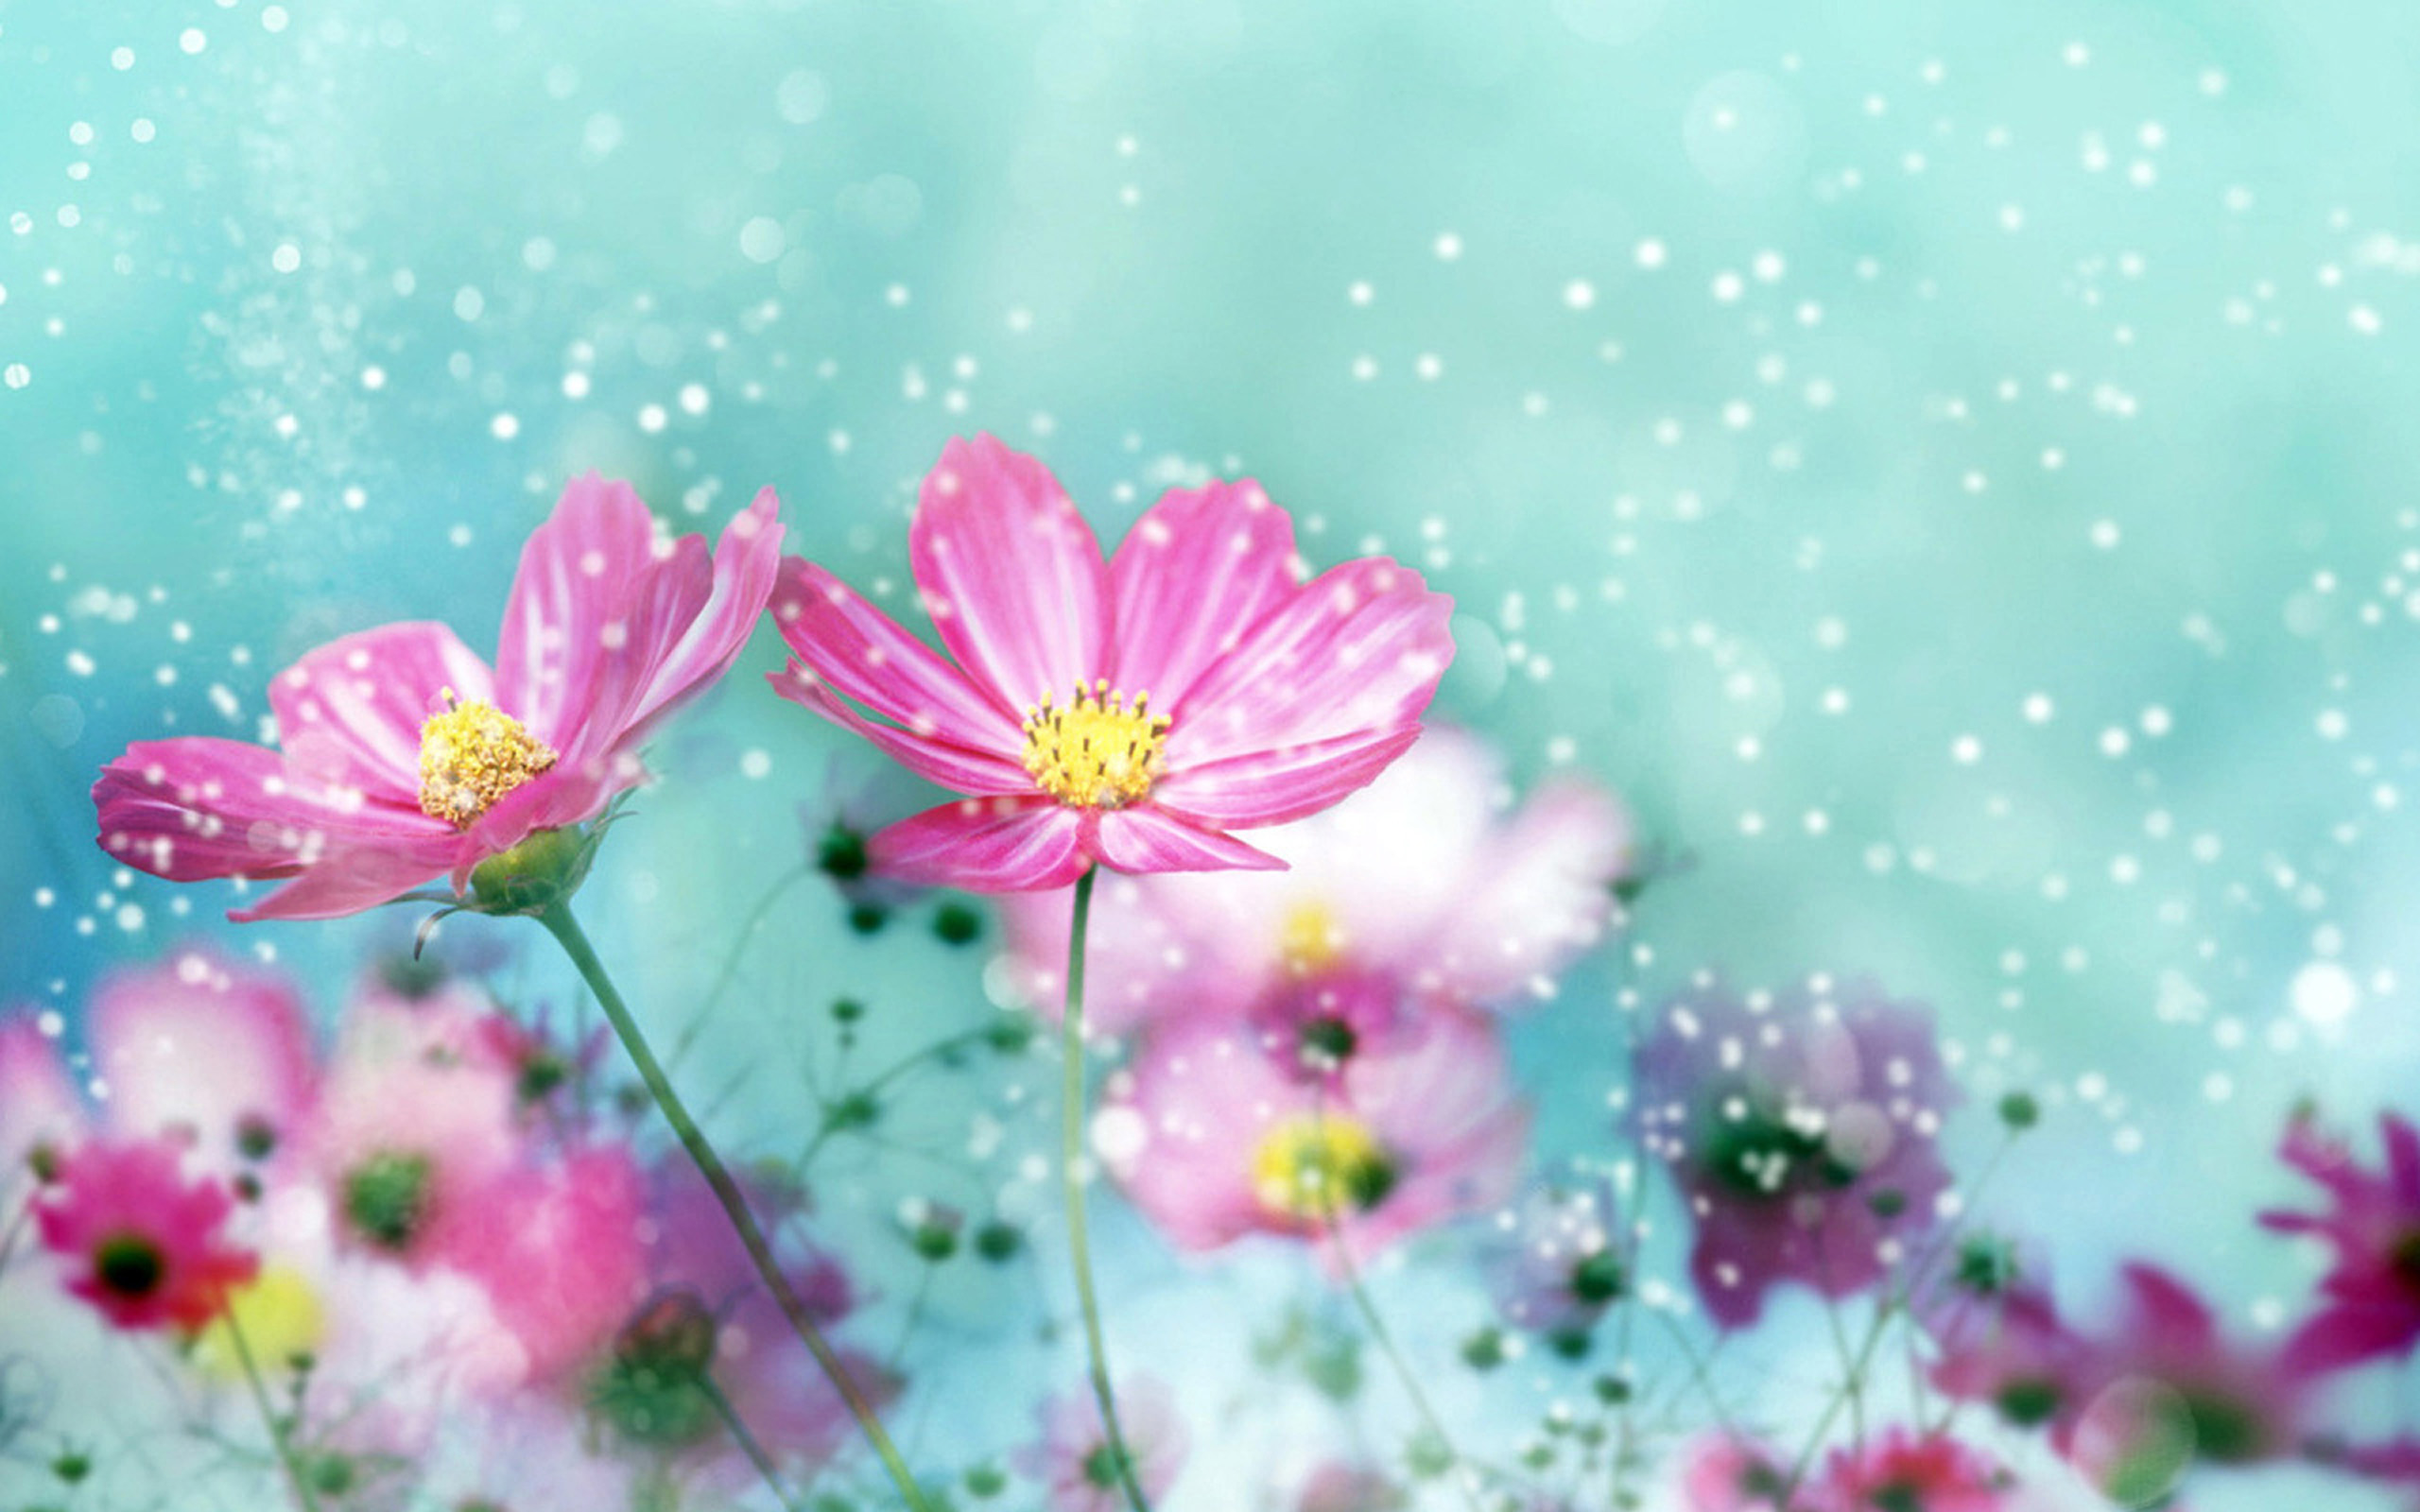 beautiful flowers wallpaper hd desktop #4512 wallpaper | walldiskpaper